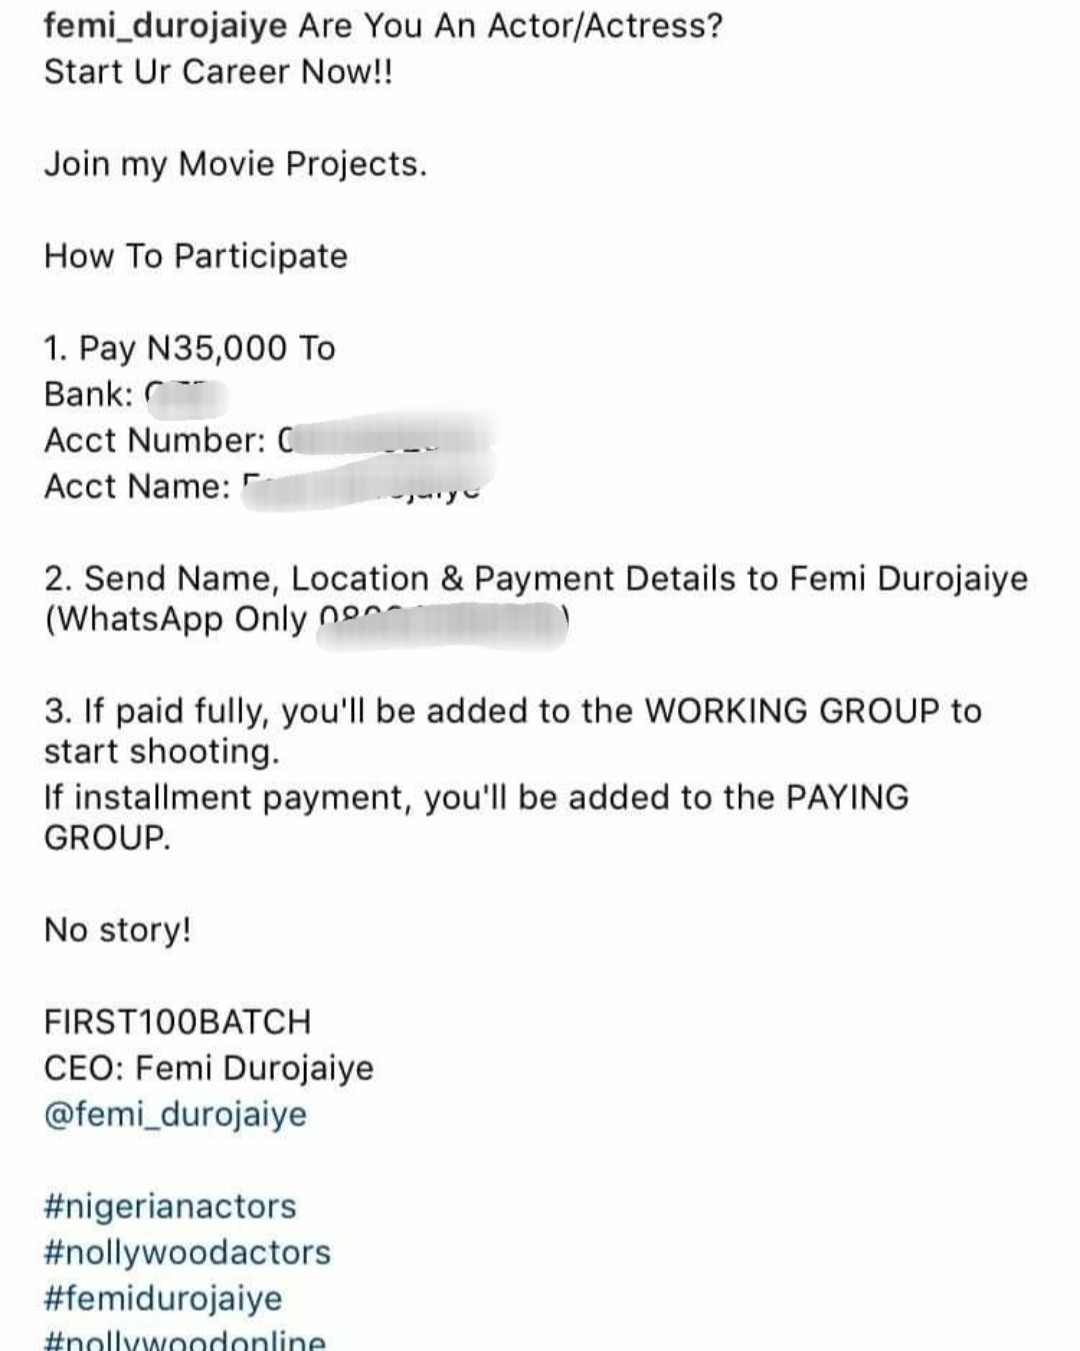 Lala Akindoju and others blast Femi Durojaiye for asking up-and-coming actors to pay 35k for movie roles